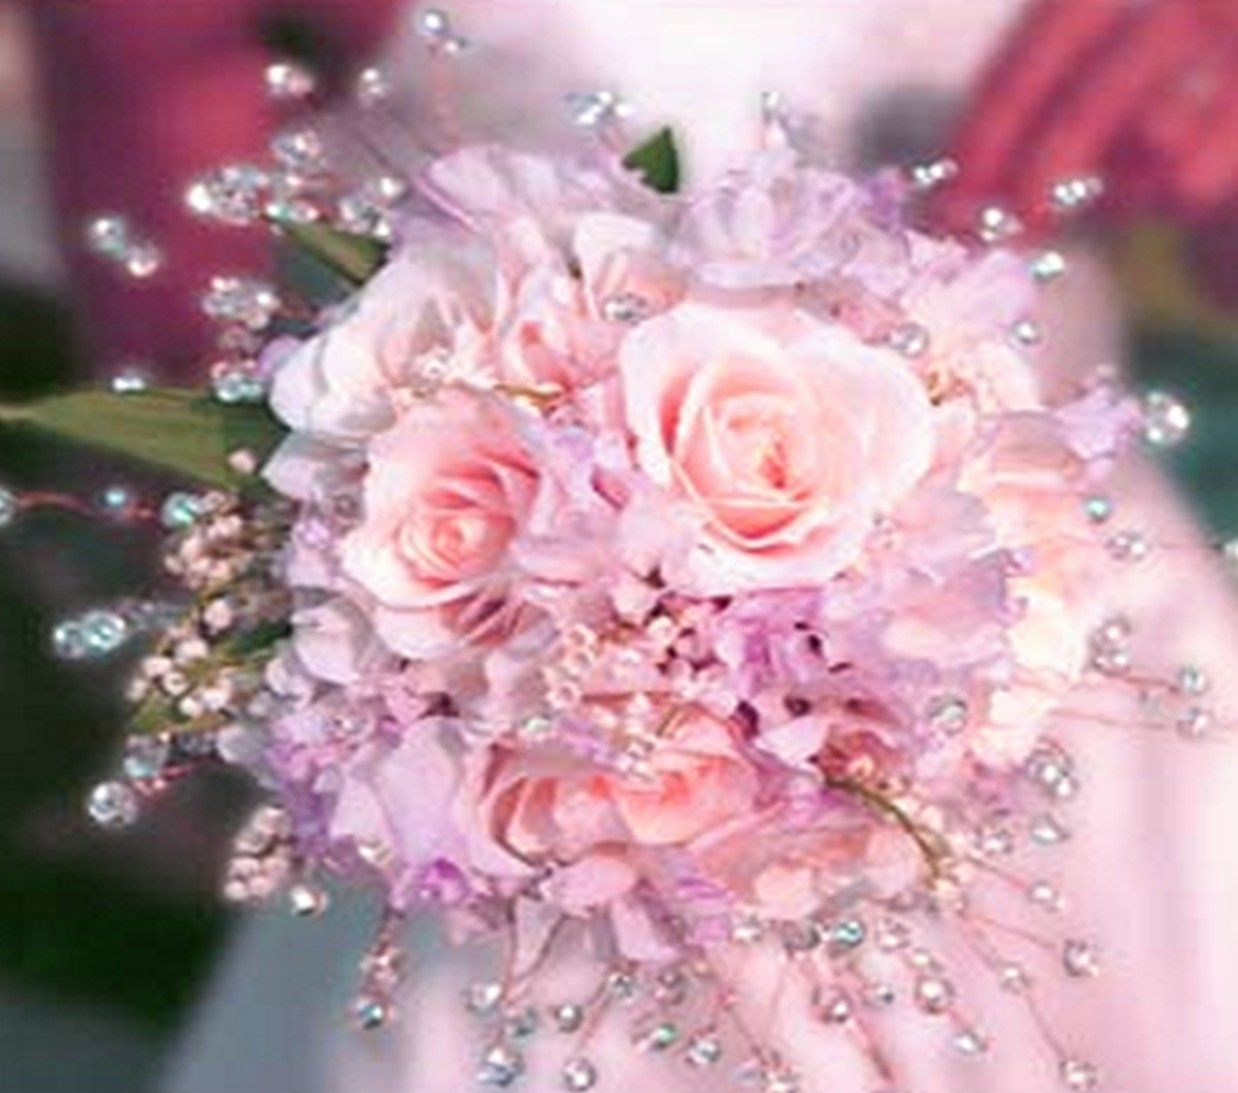 Flowers | Weddings | Pinterest | Pink bouquet, Wedding things and ...